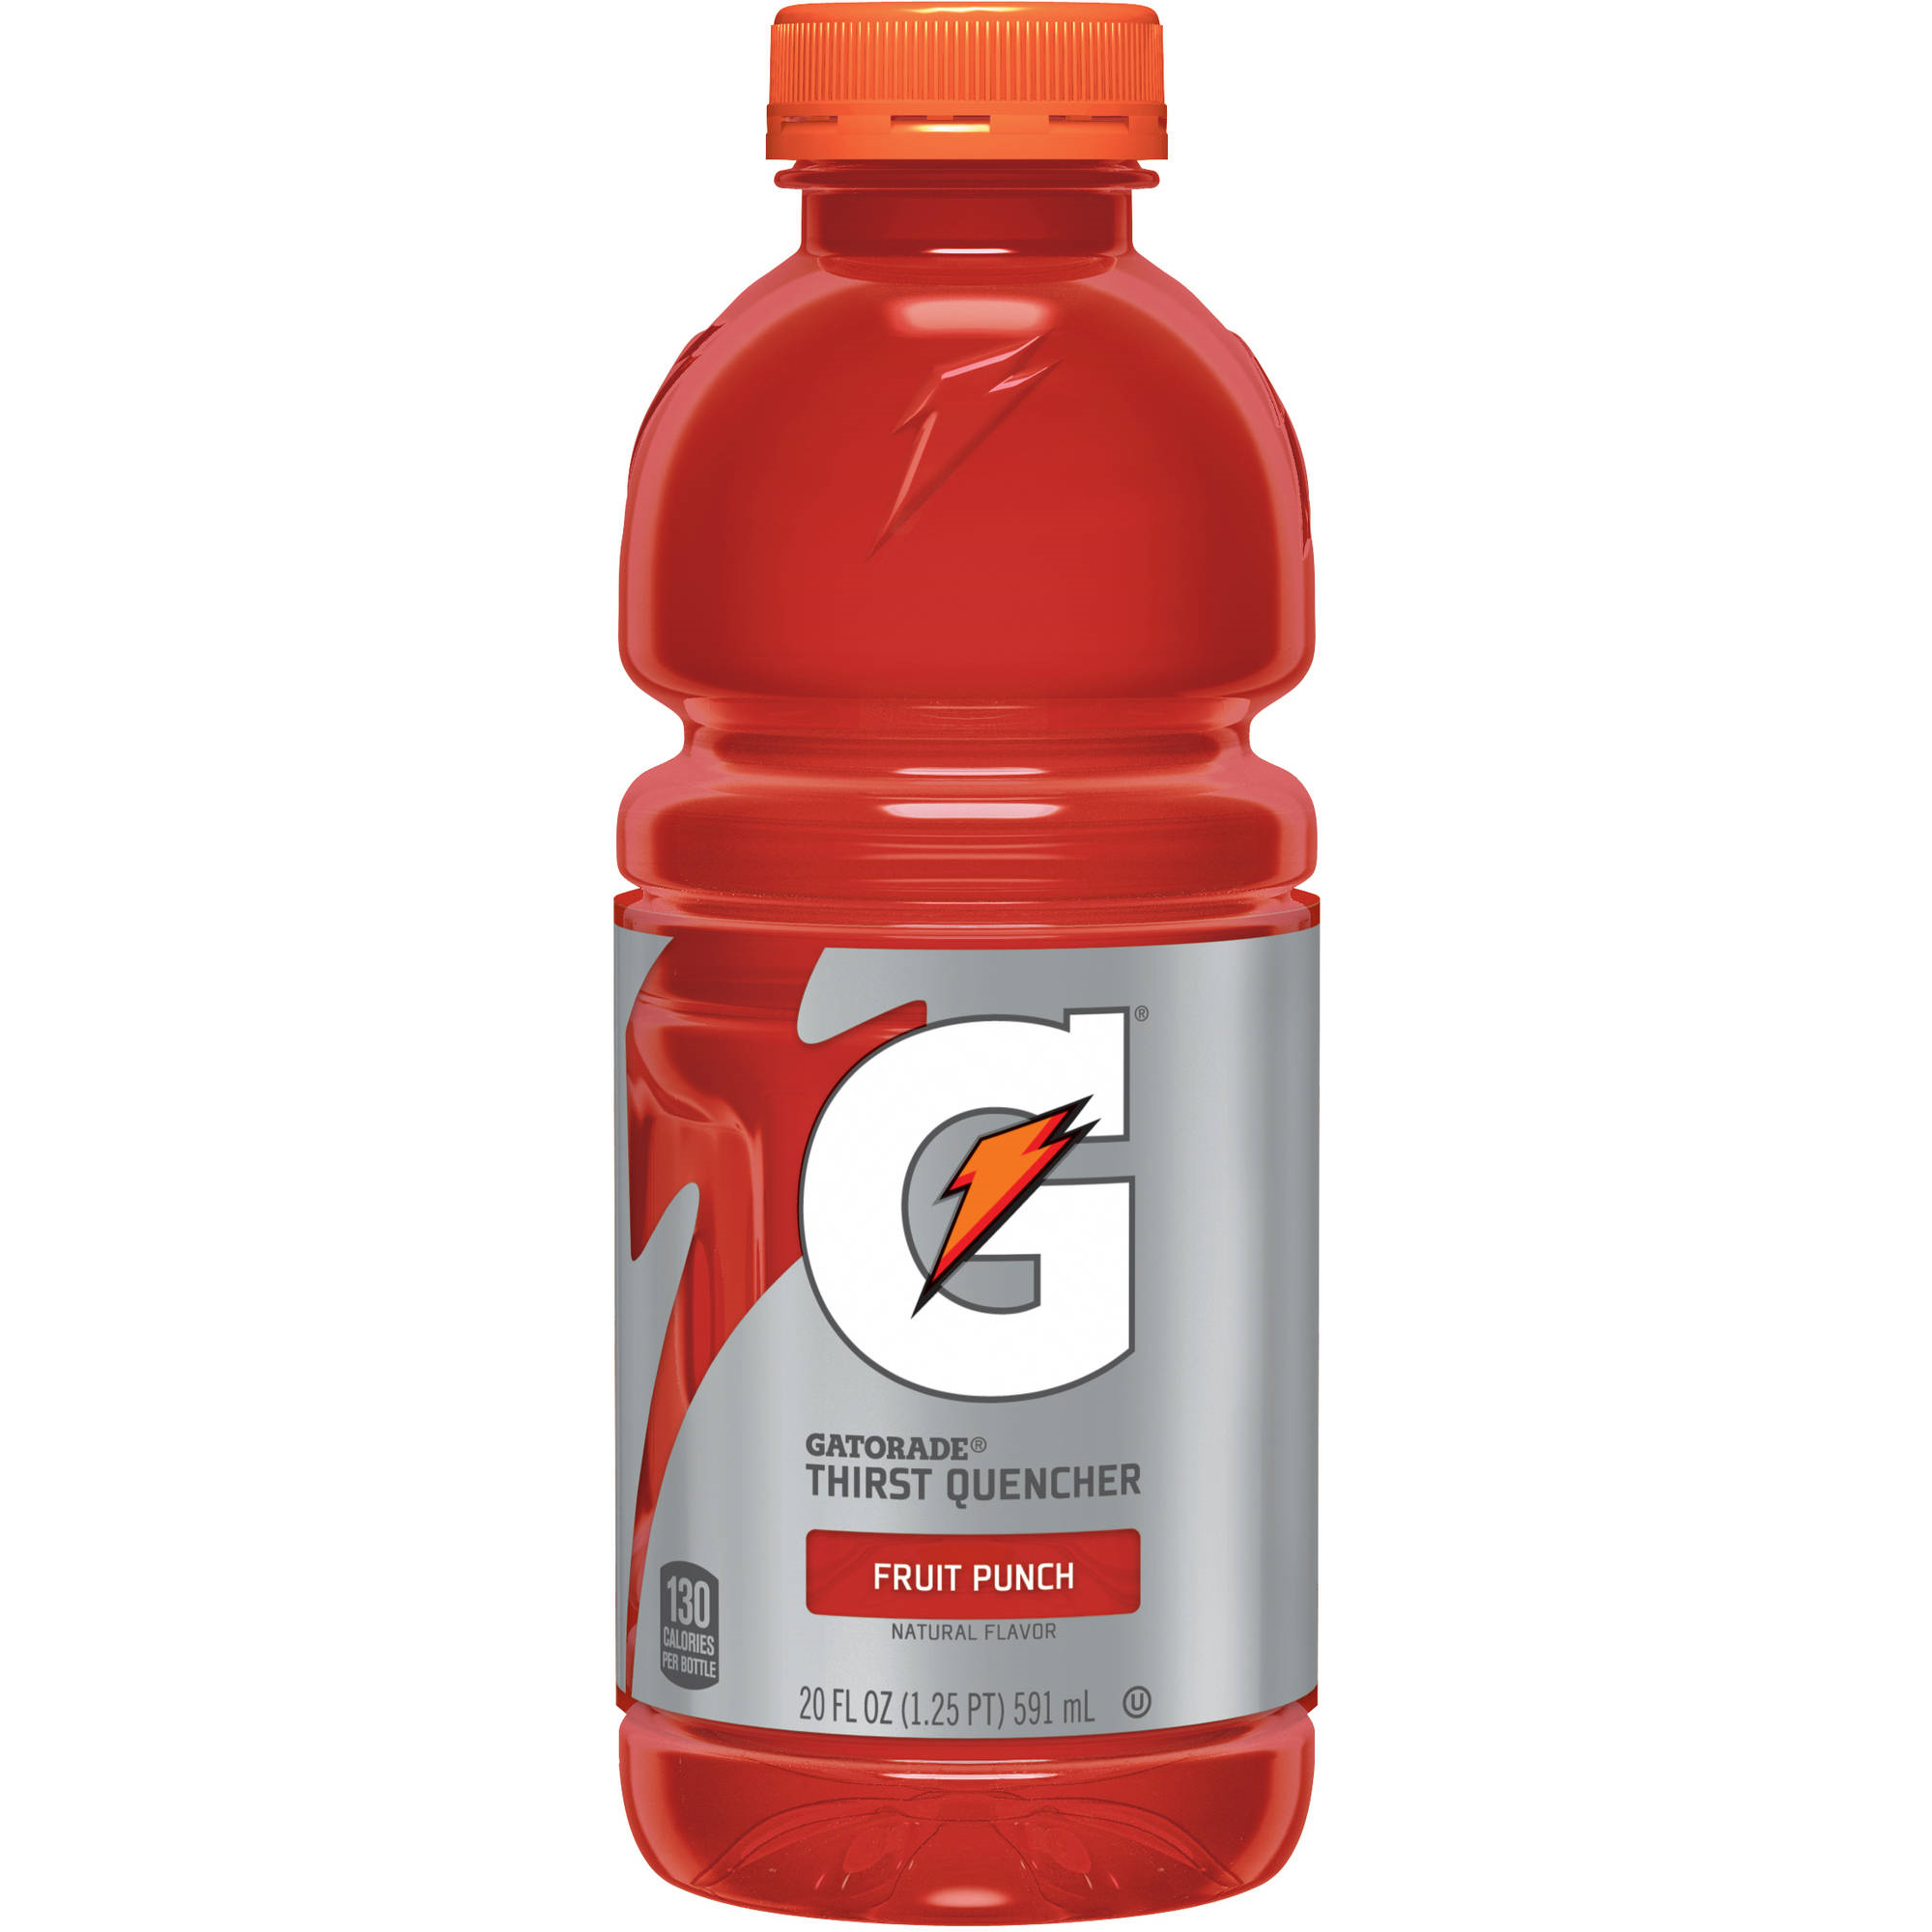 Gatorage (Fruit Punch)